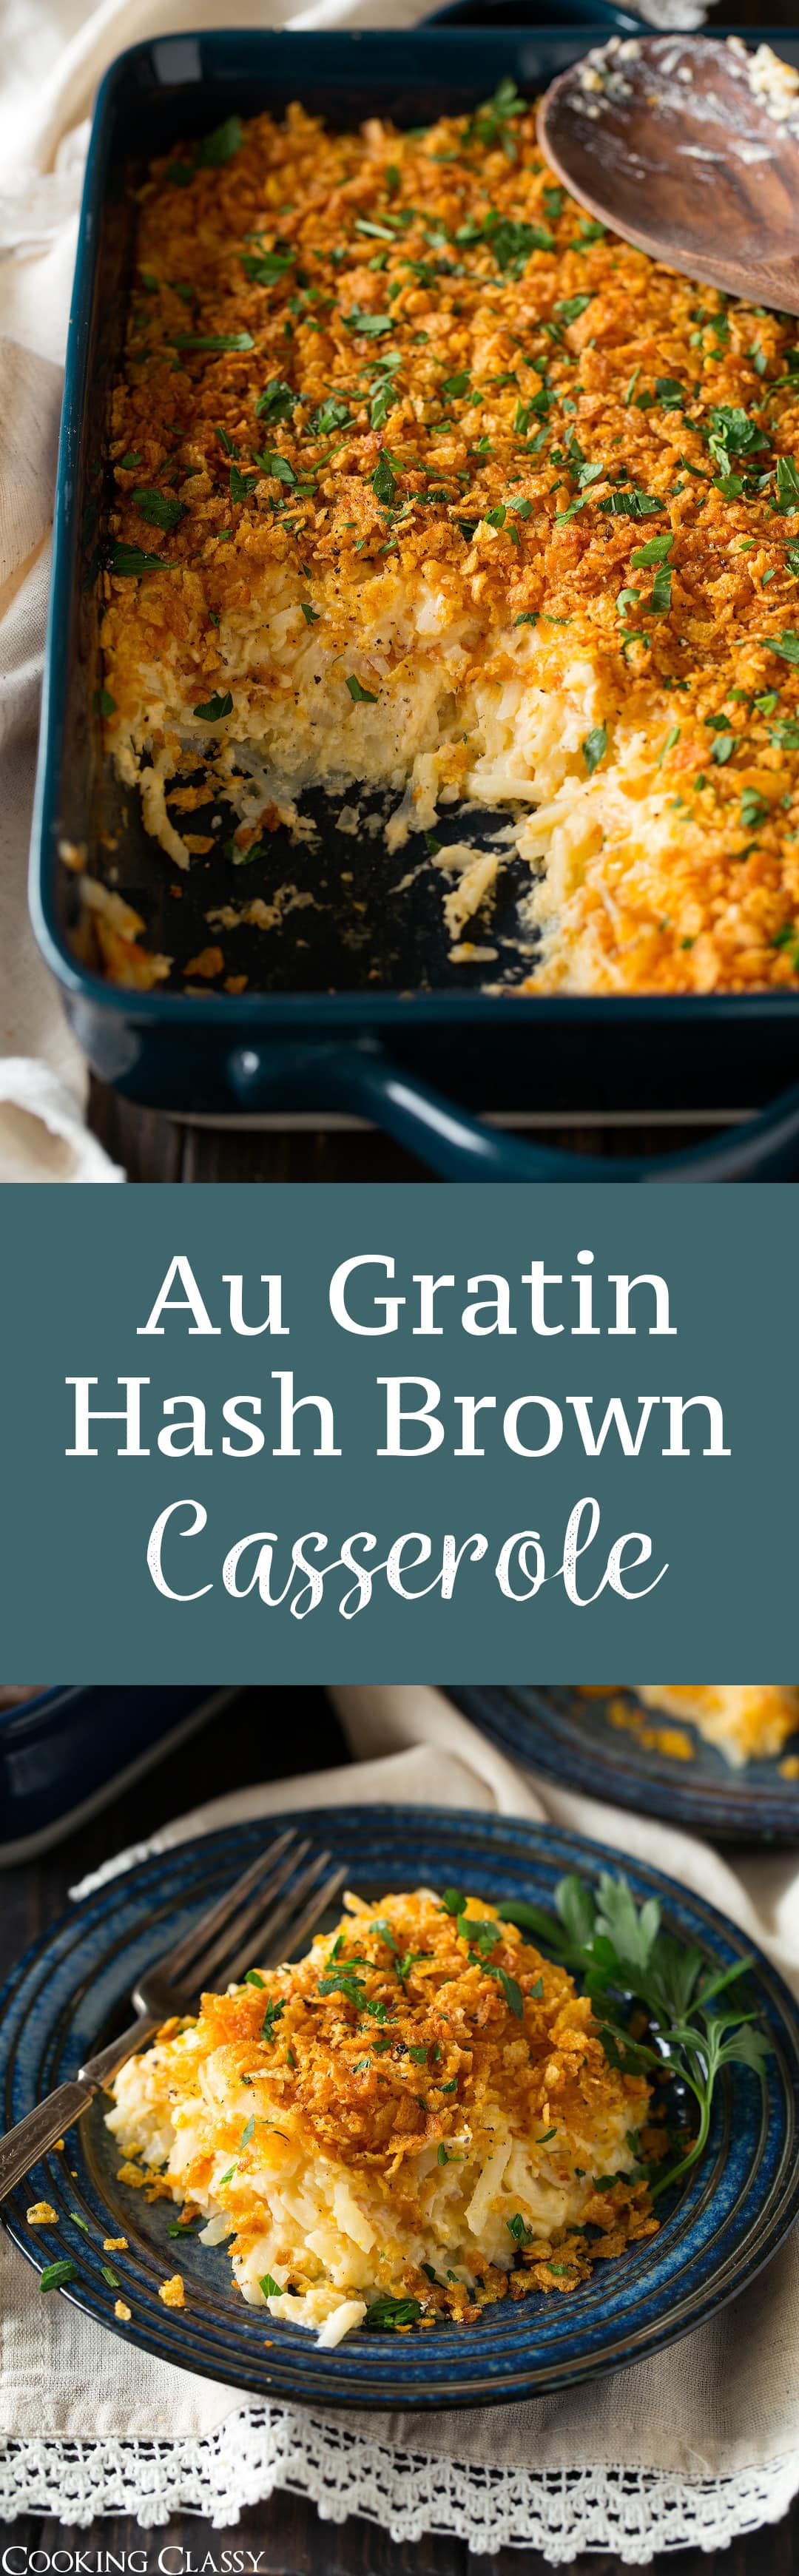 These Au Gratin Hash Brown Potatoes are the definition of comfort food! Like a loaded baked potato in casserole form! Perfect for parties and holidays.